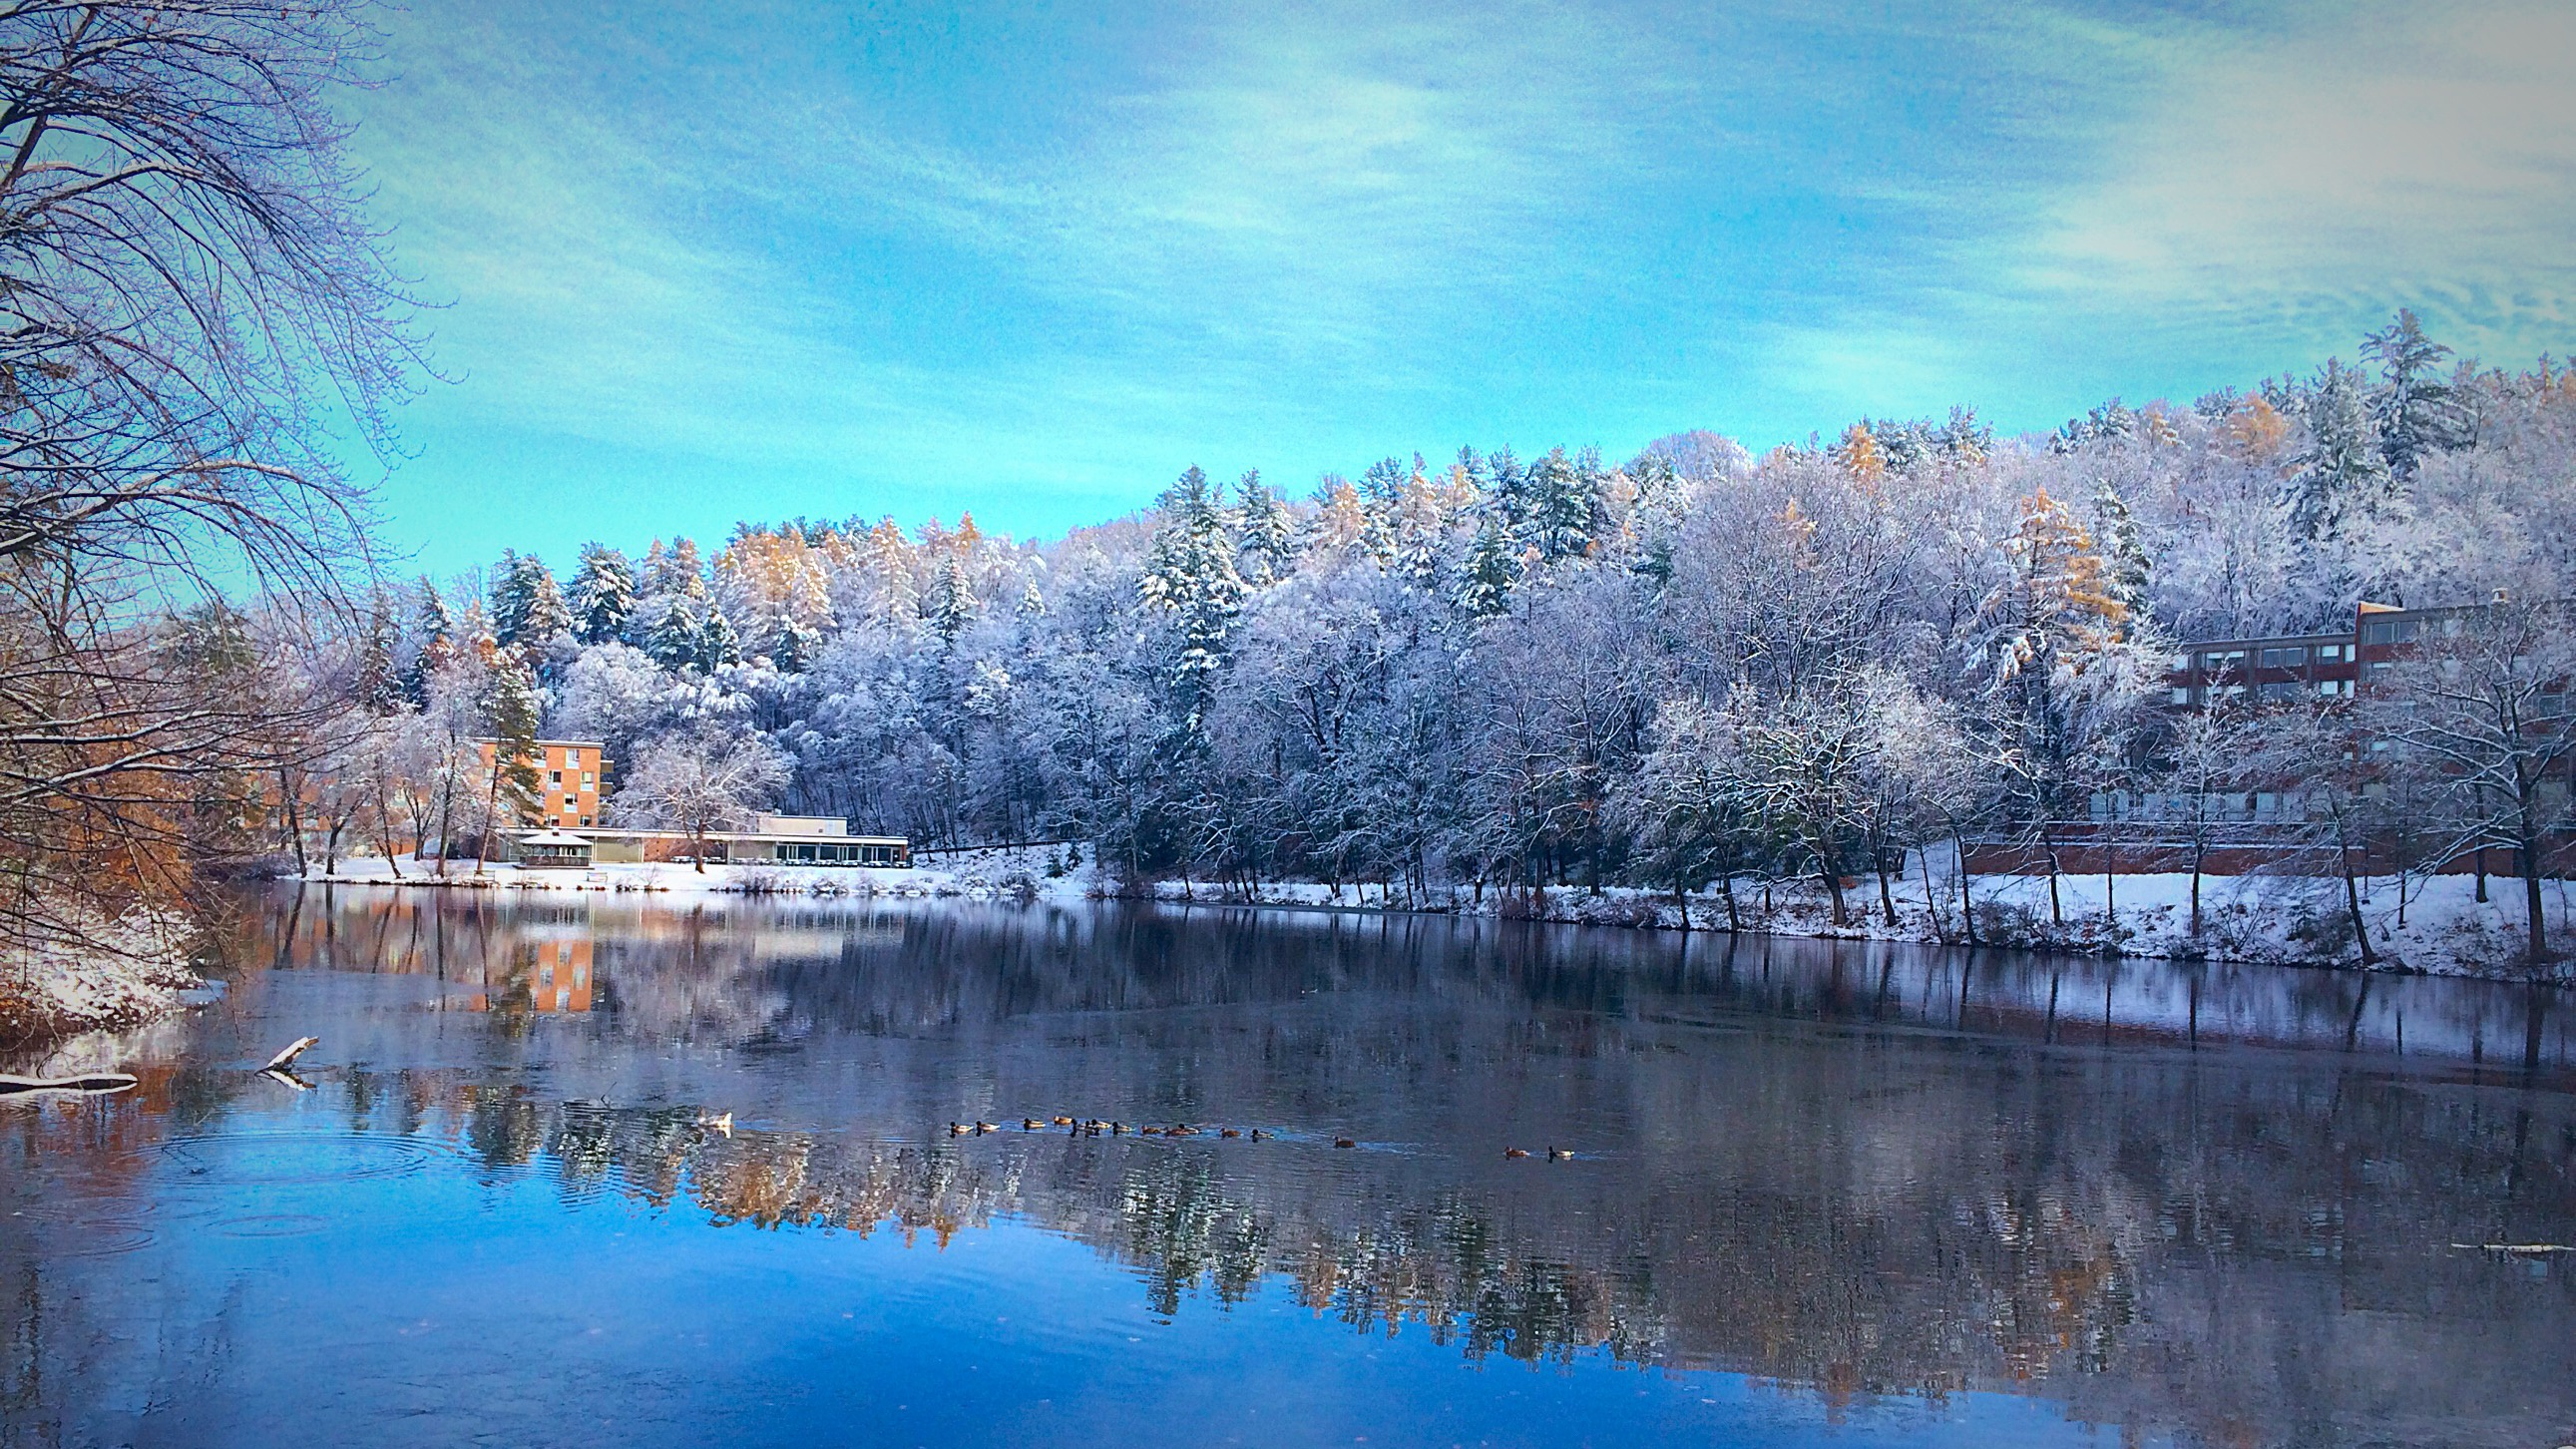 Lower Lake in winter